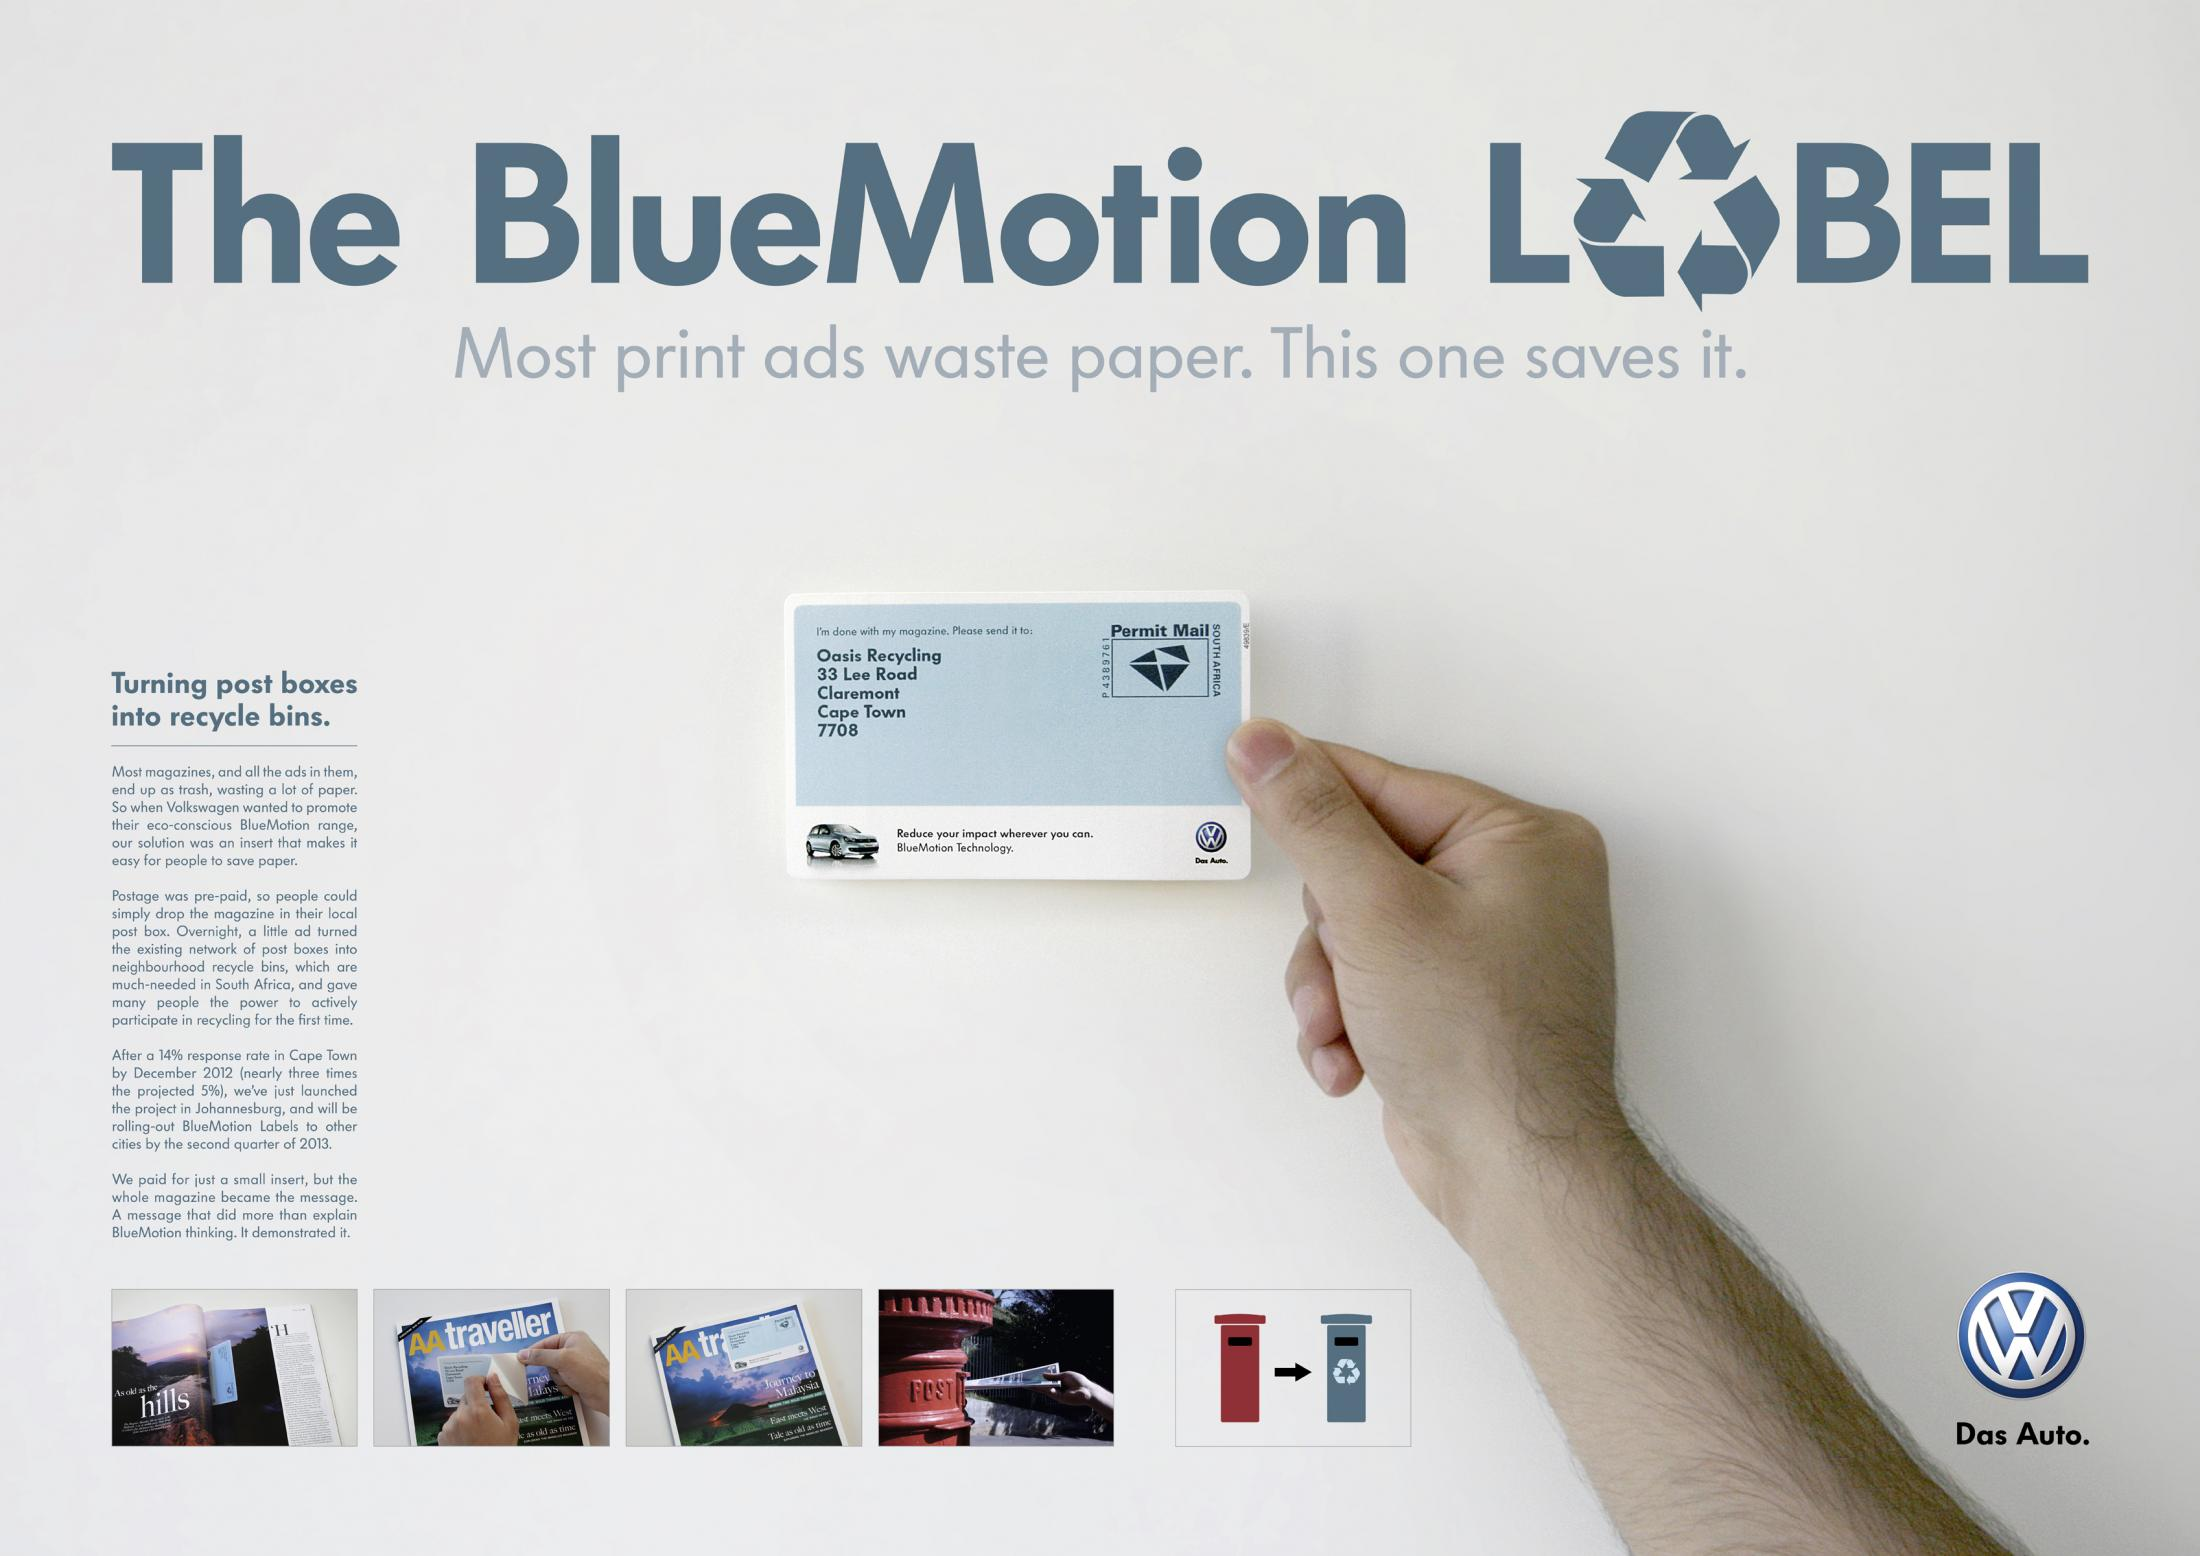 Thumbnail for The BlueMotion Label